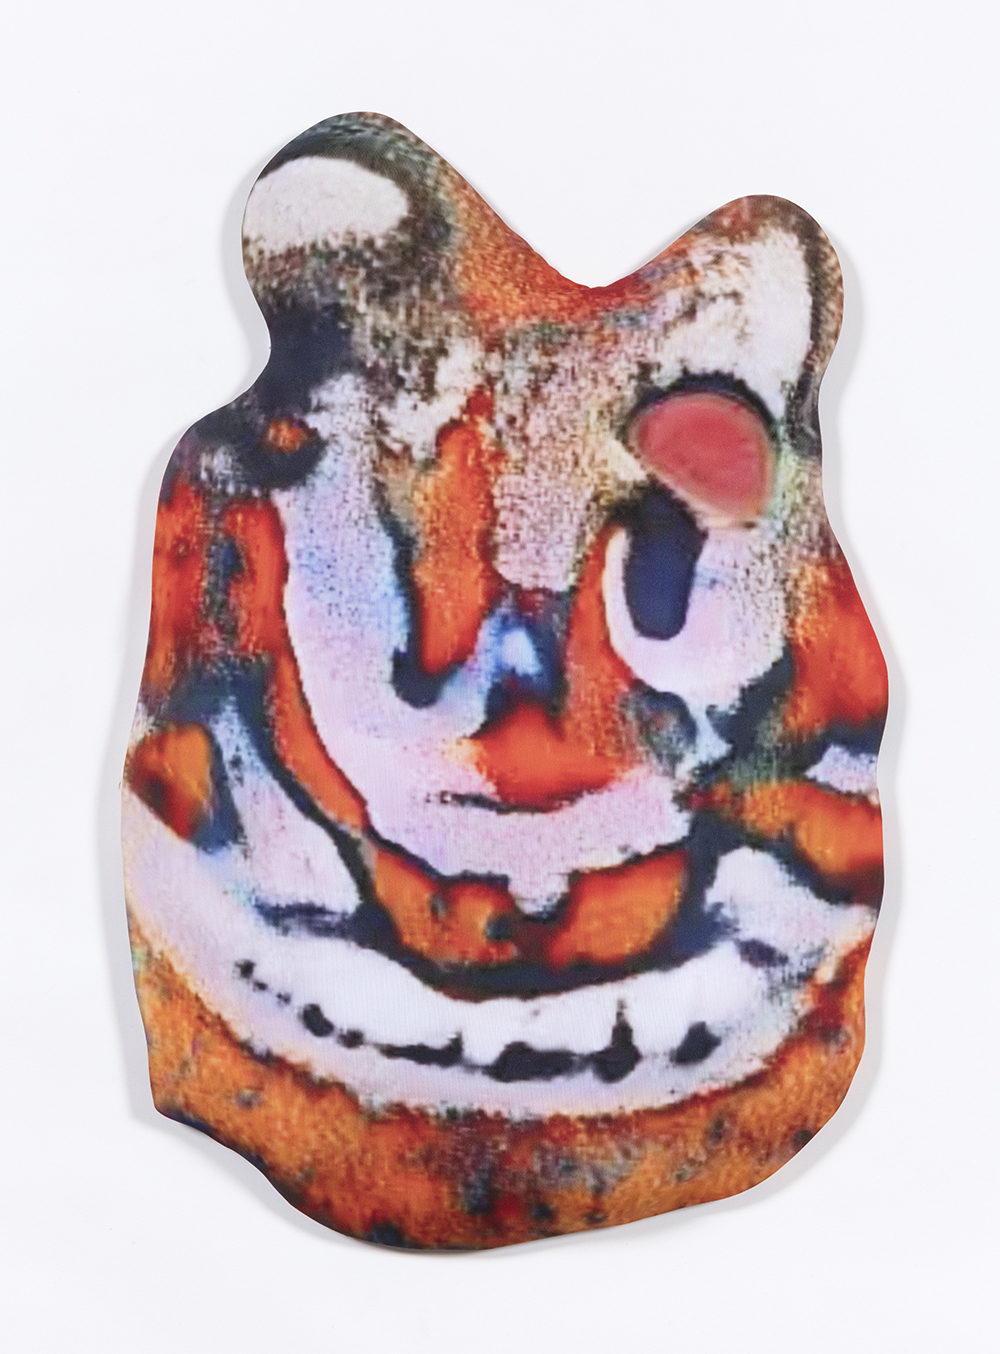 Hannah Epstein. <em>Garfield Sundae</em>, 2020. Digital print on lycra; polyfill and wood, 25 1/2 x 15 1/2 x 2 1/2 inches  (64.8 x 39.4 x 6.4 cm)